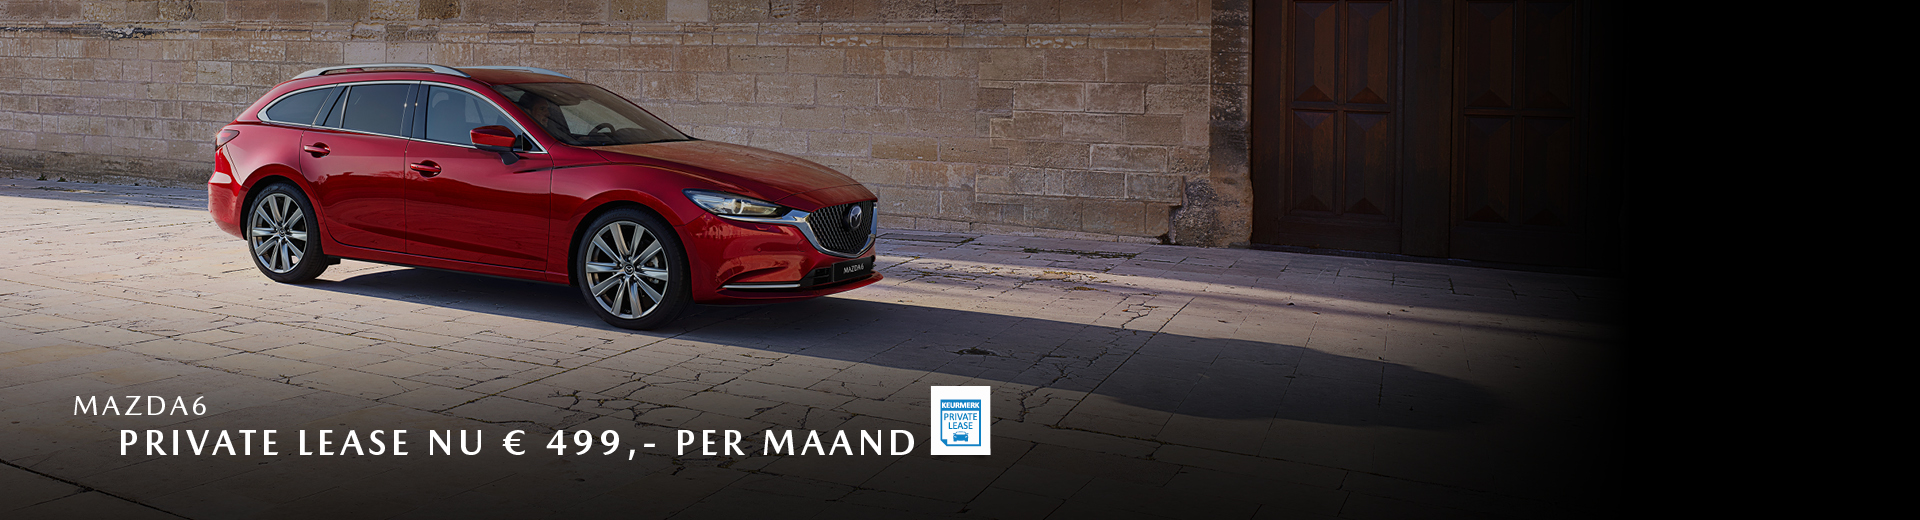 180854 Mazda Nieuwe stijl 2019_Banner 1920x520px_Private lease_Mazda6 [opmaak 01]